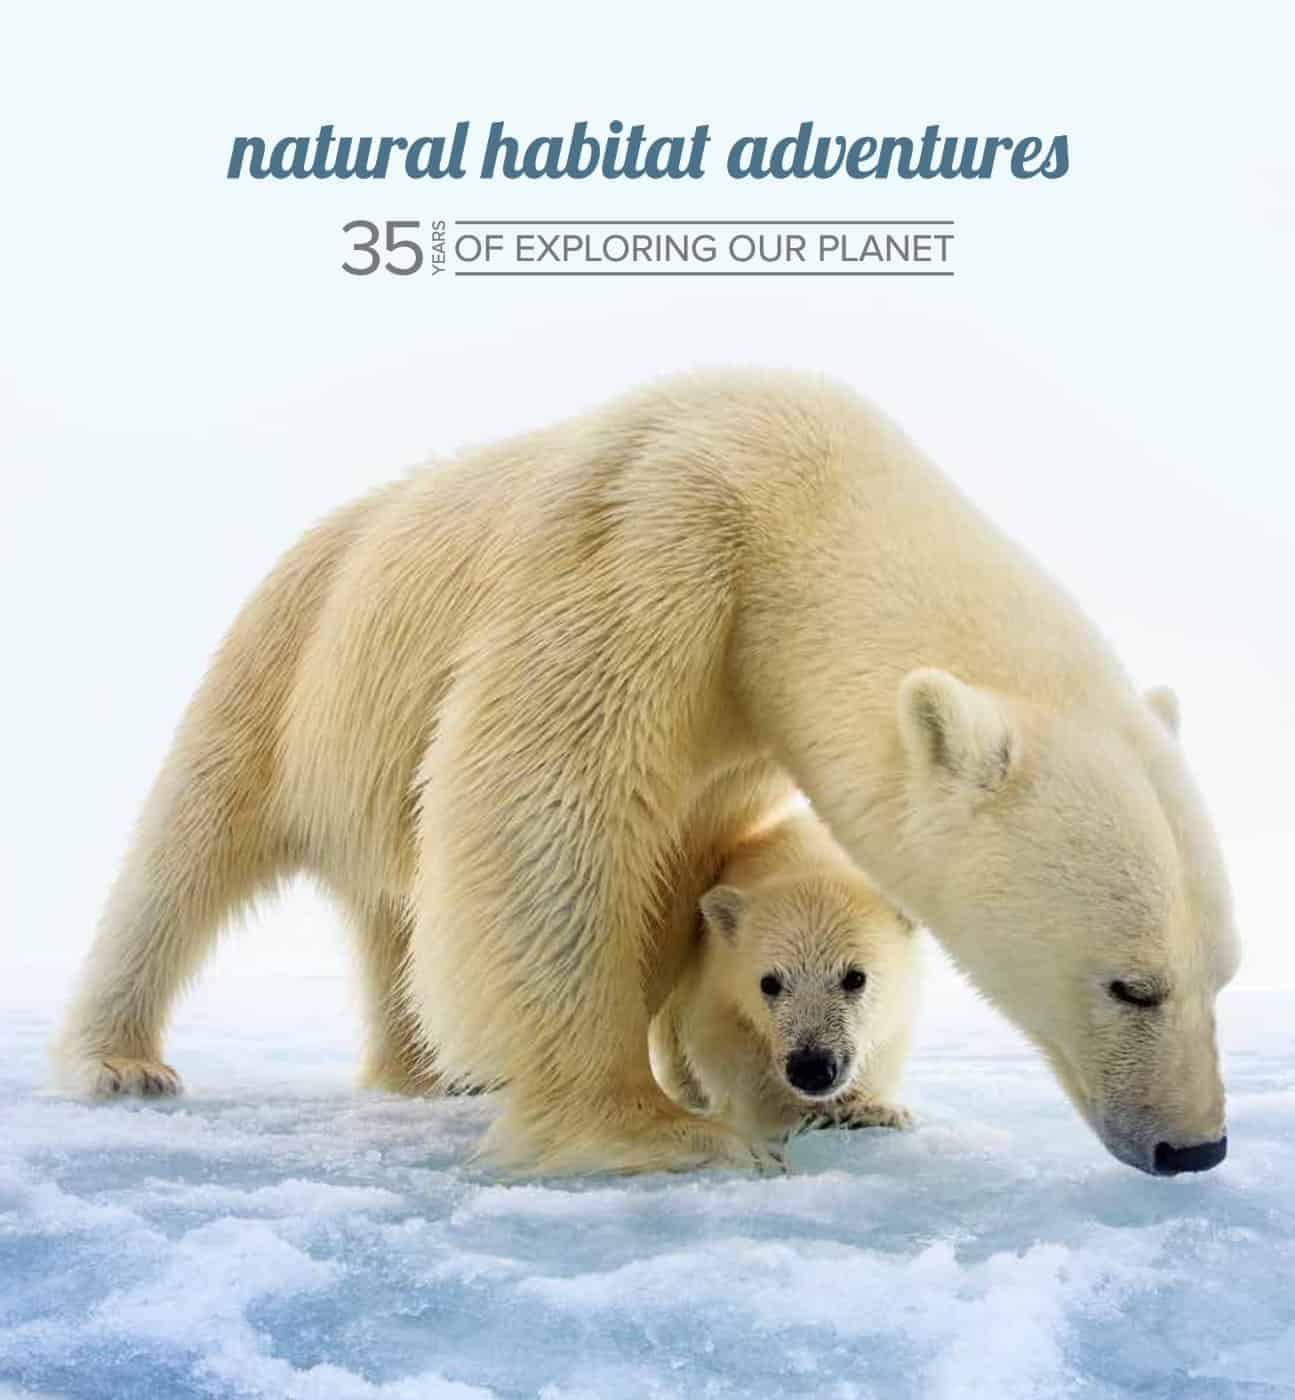 Full PDF of Natural Habitat Adventures - 35 years of exploring our planet